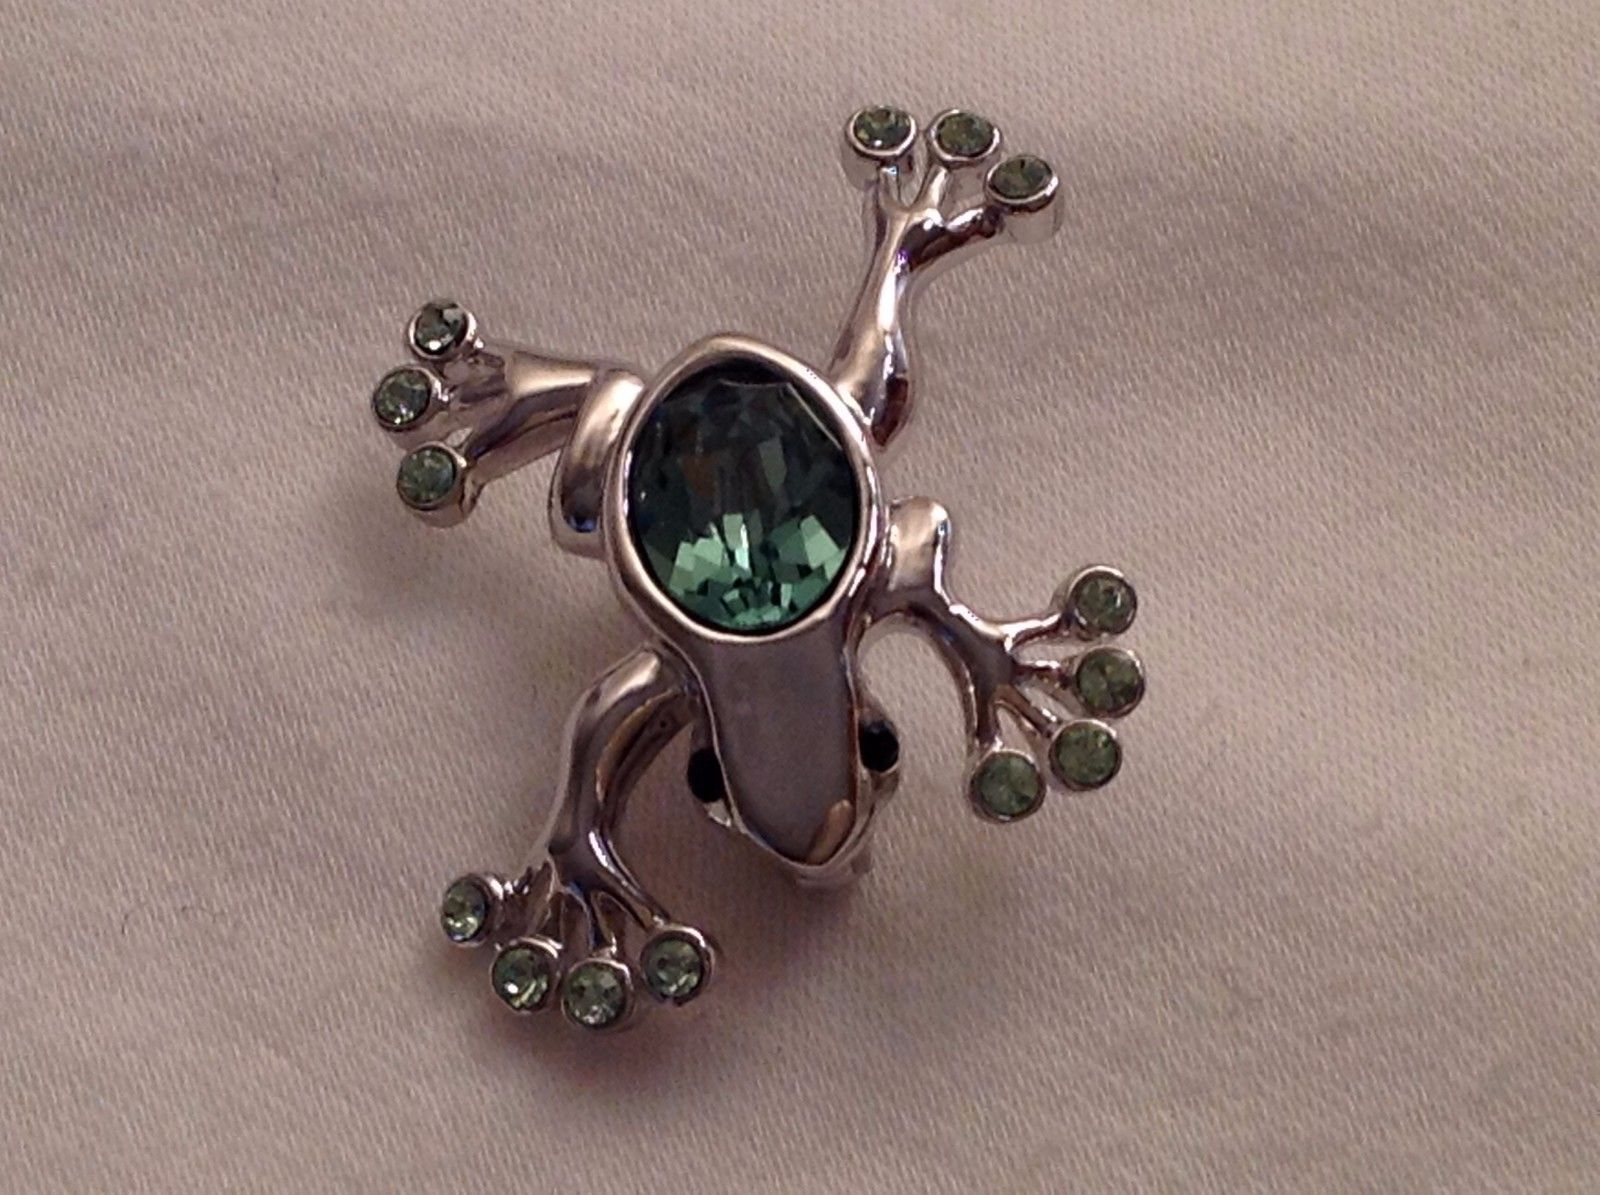 NWT Annaleece Froggy Pin Rhodium Silver Frog Brooch made with Swarovski elements